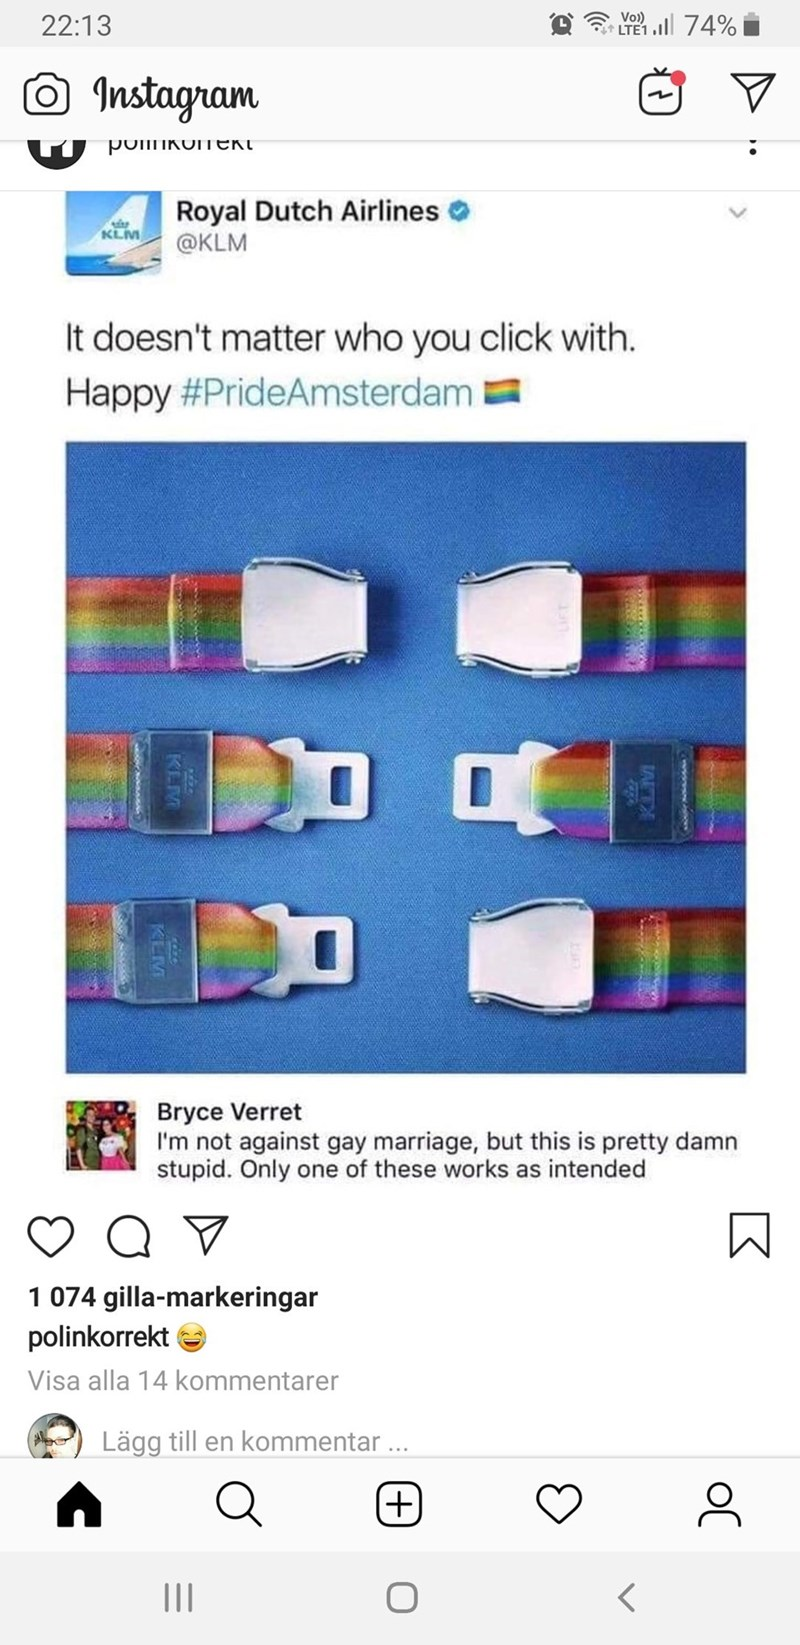 meme - Product - Vo) 22:13 LTE1 74% Instagram pokoeKt Royal Dutch Airlines @KLM KLM It doesn't matter who you click with. Happy #PrideAmsterdam Bryce Verret I'm not against gay marriage, but this is pretty damn stupid. Only one of these works as intended 1 074 gilla-markeringar polinkorrekt Visa alla 14 kommentarer Lägg till en kommentar... (+) TA KLM